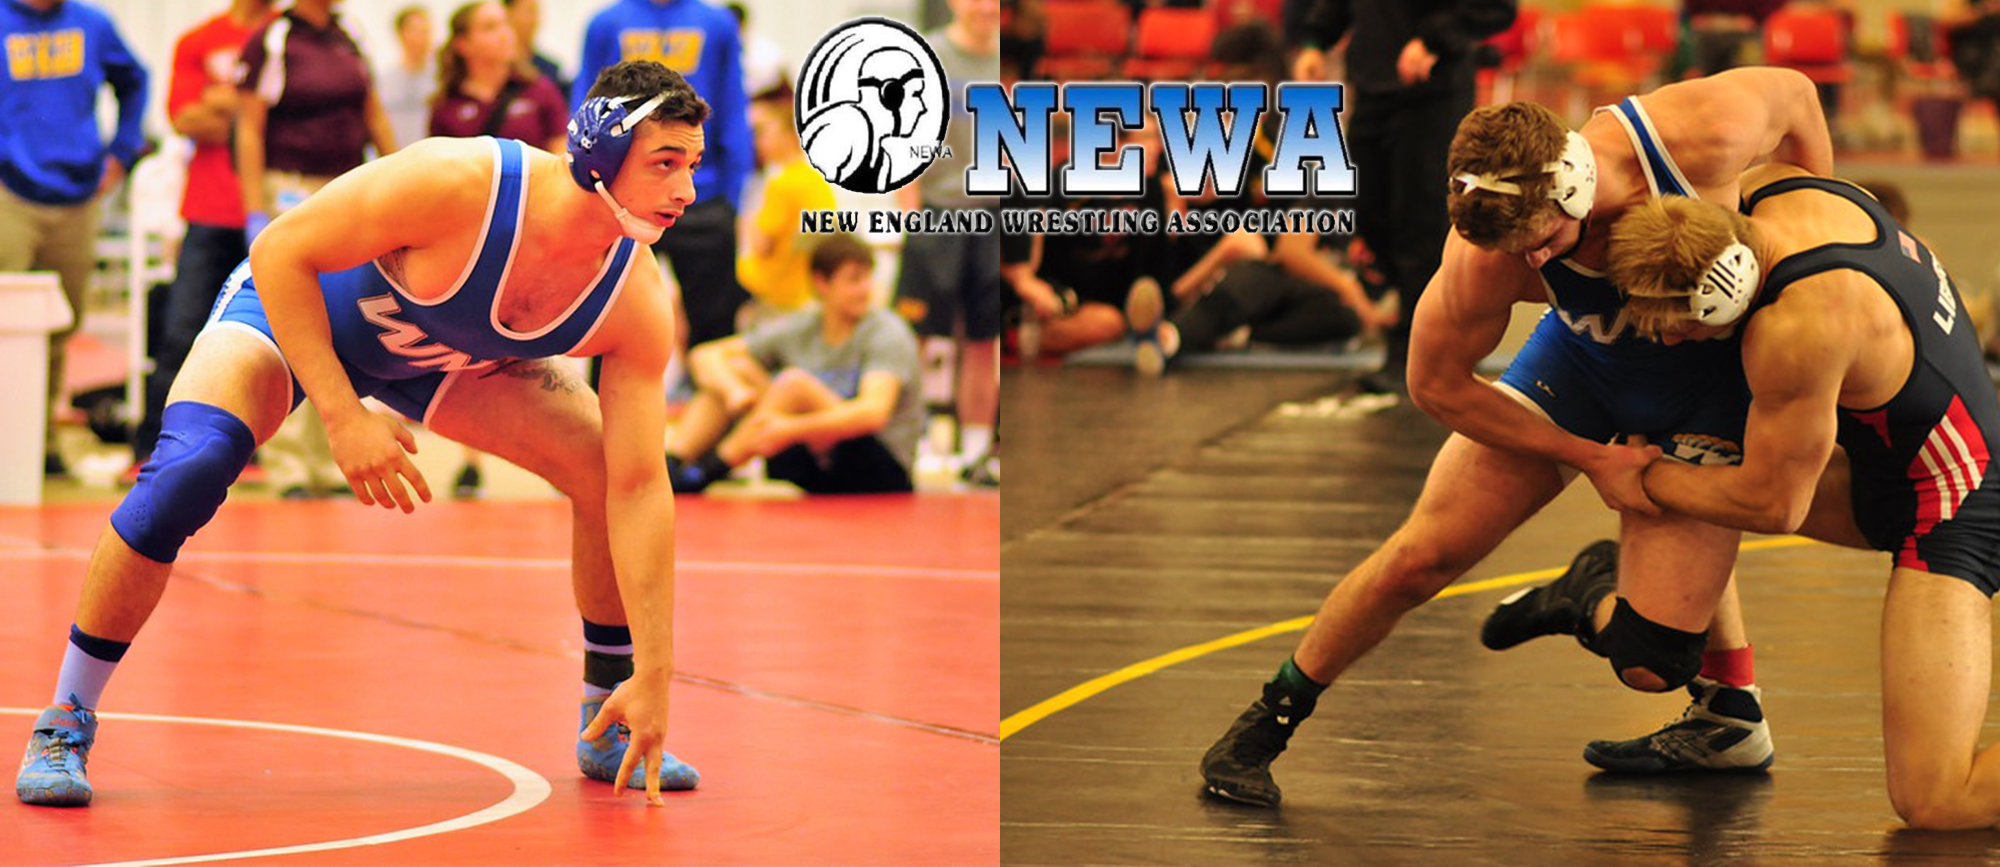 Western New England Ranked 13th in NEWA Preseason Coaches' Poll